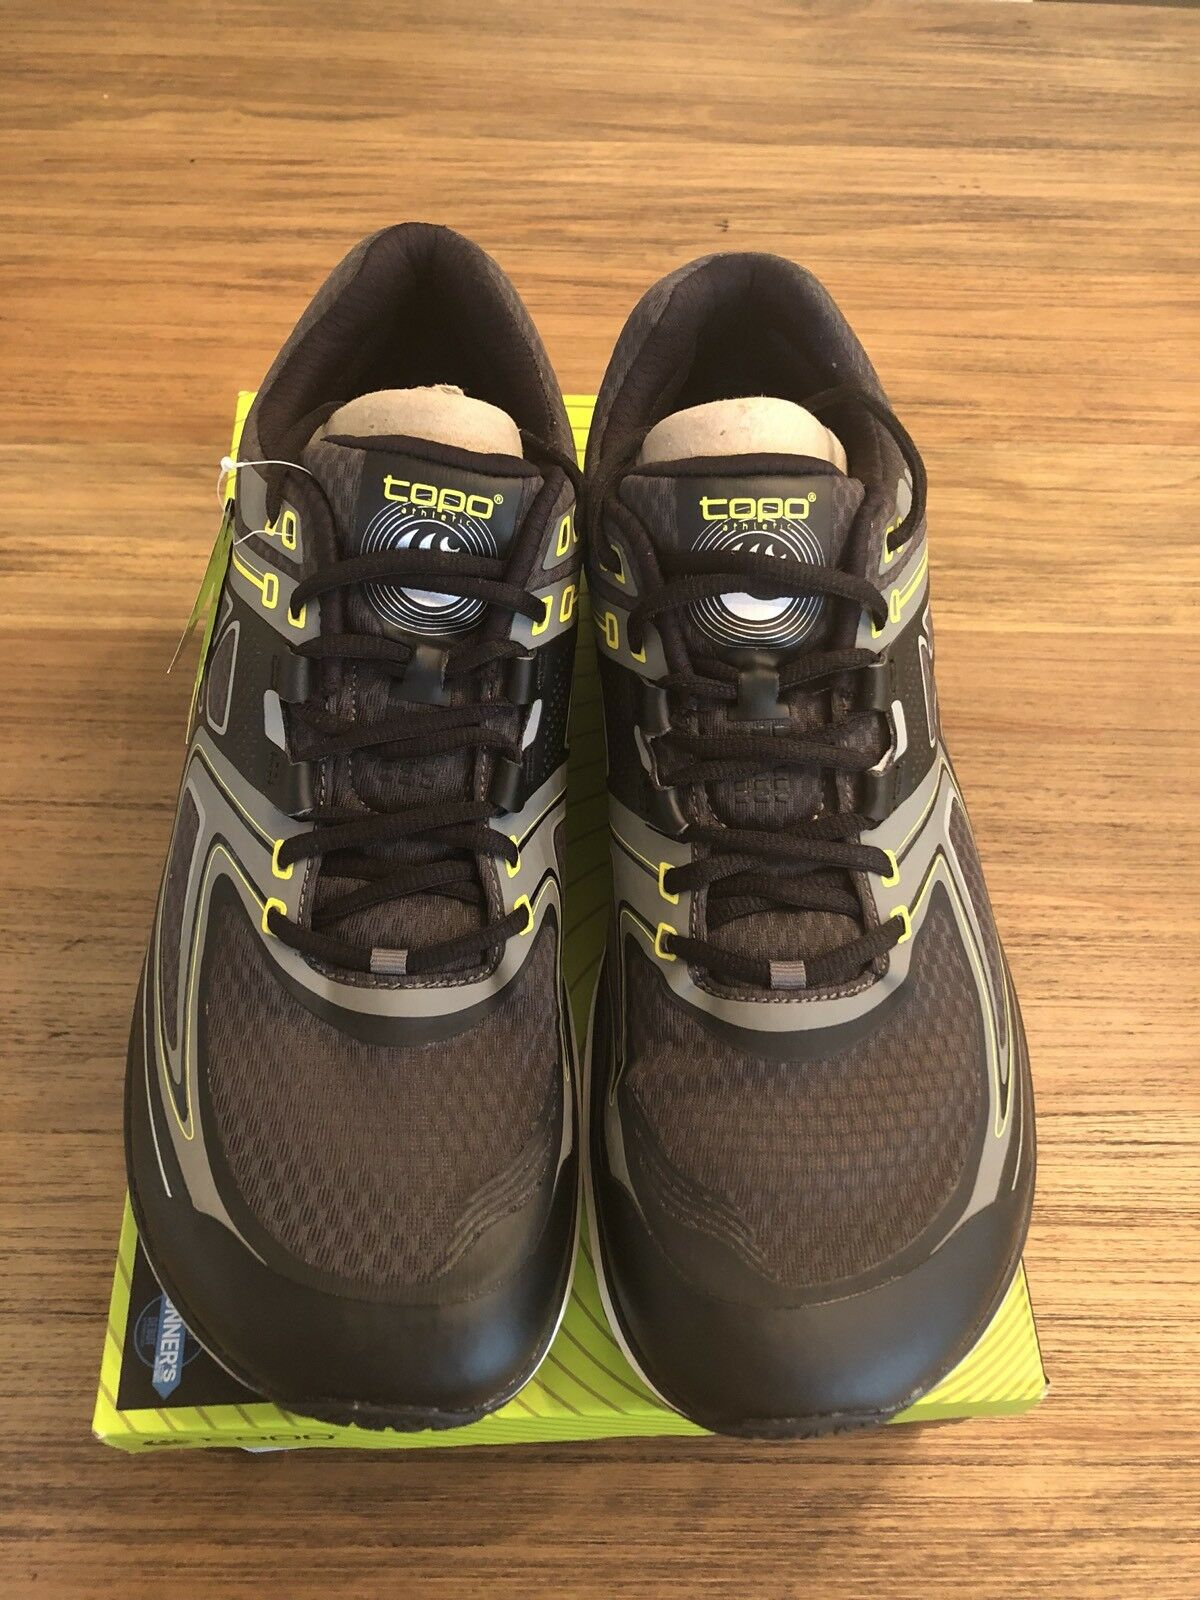 mens shoes size 14 new